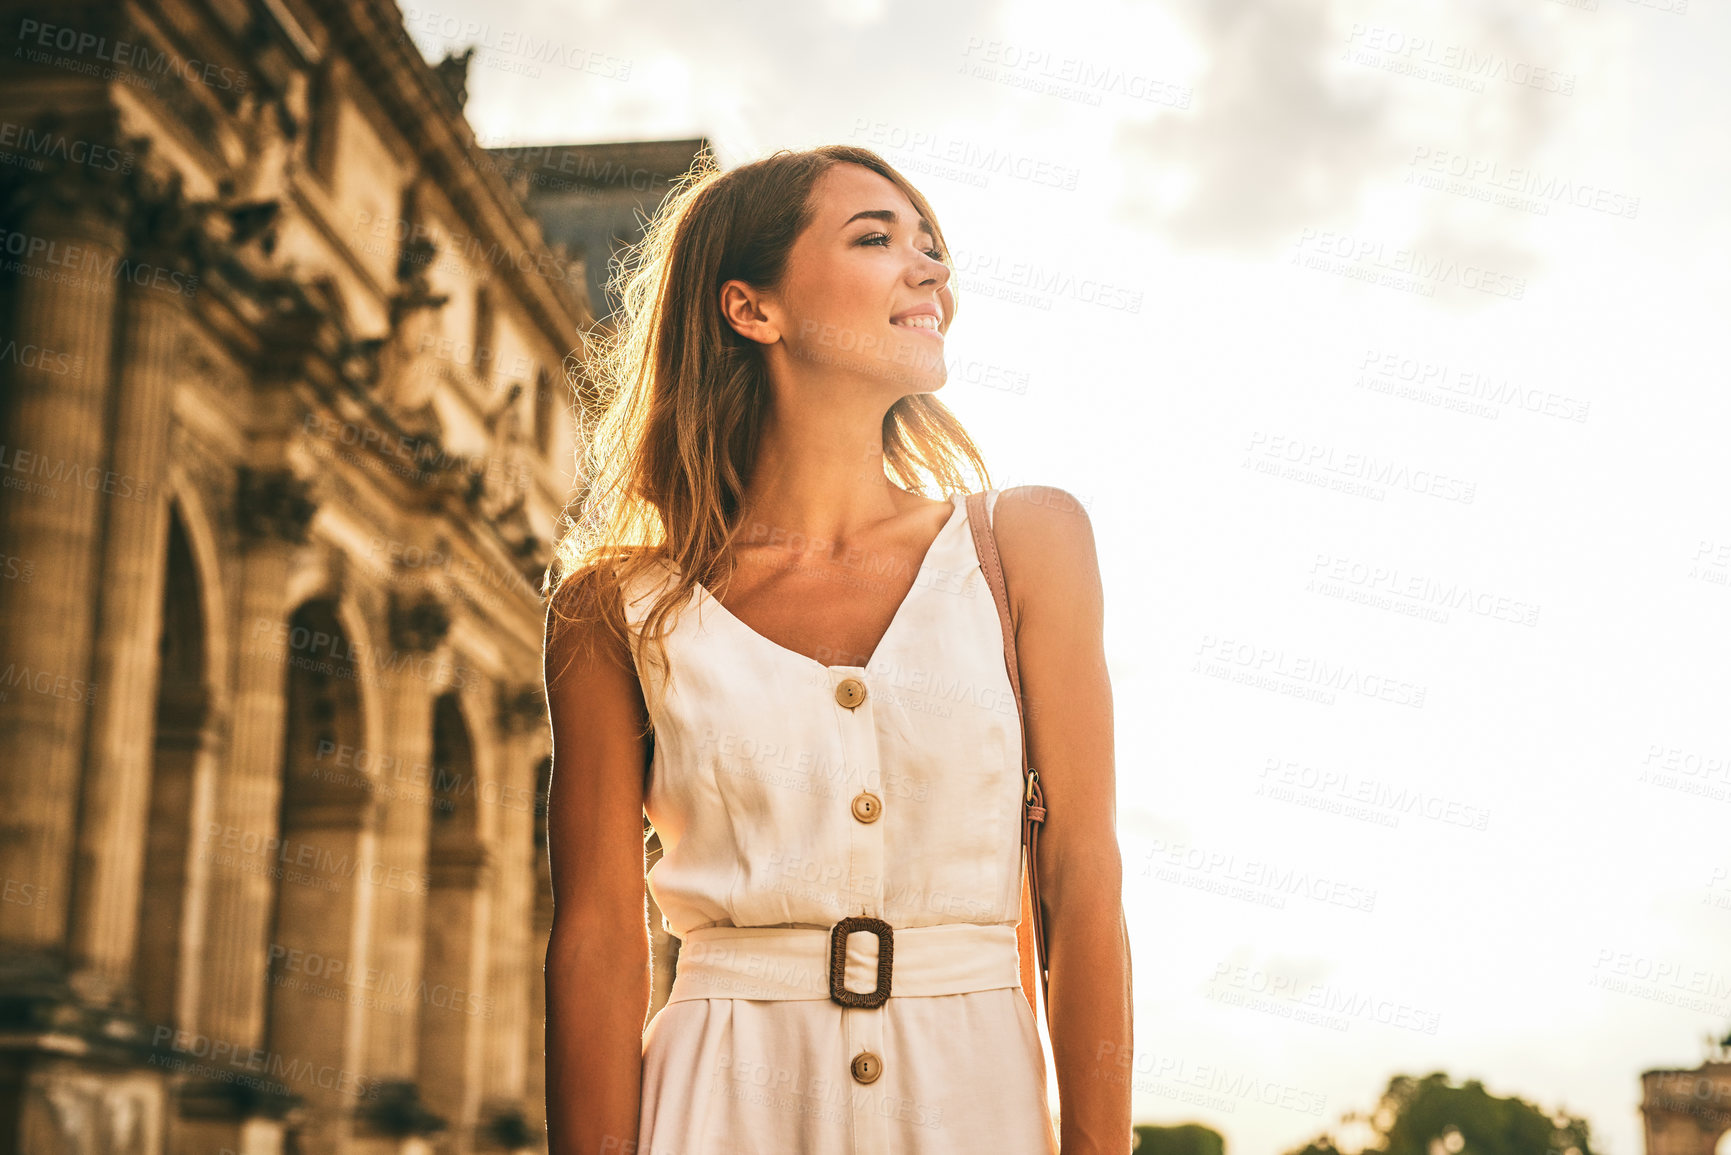 Buy stock photo Shot of a beautiful young woman exploring the city of Paris